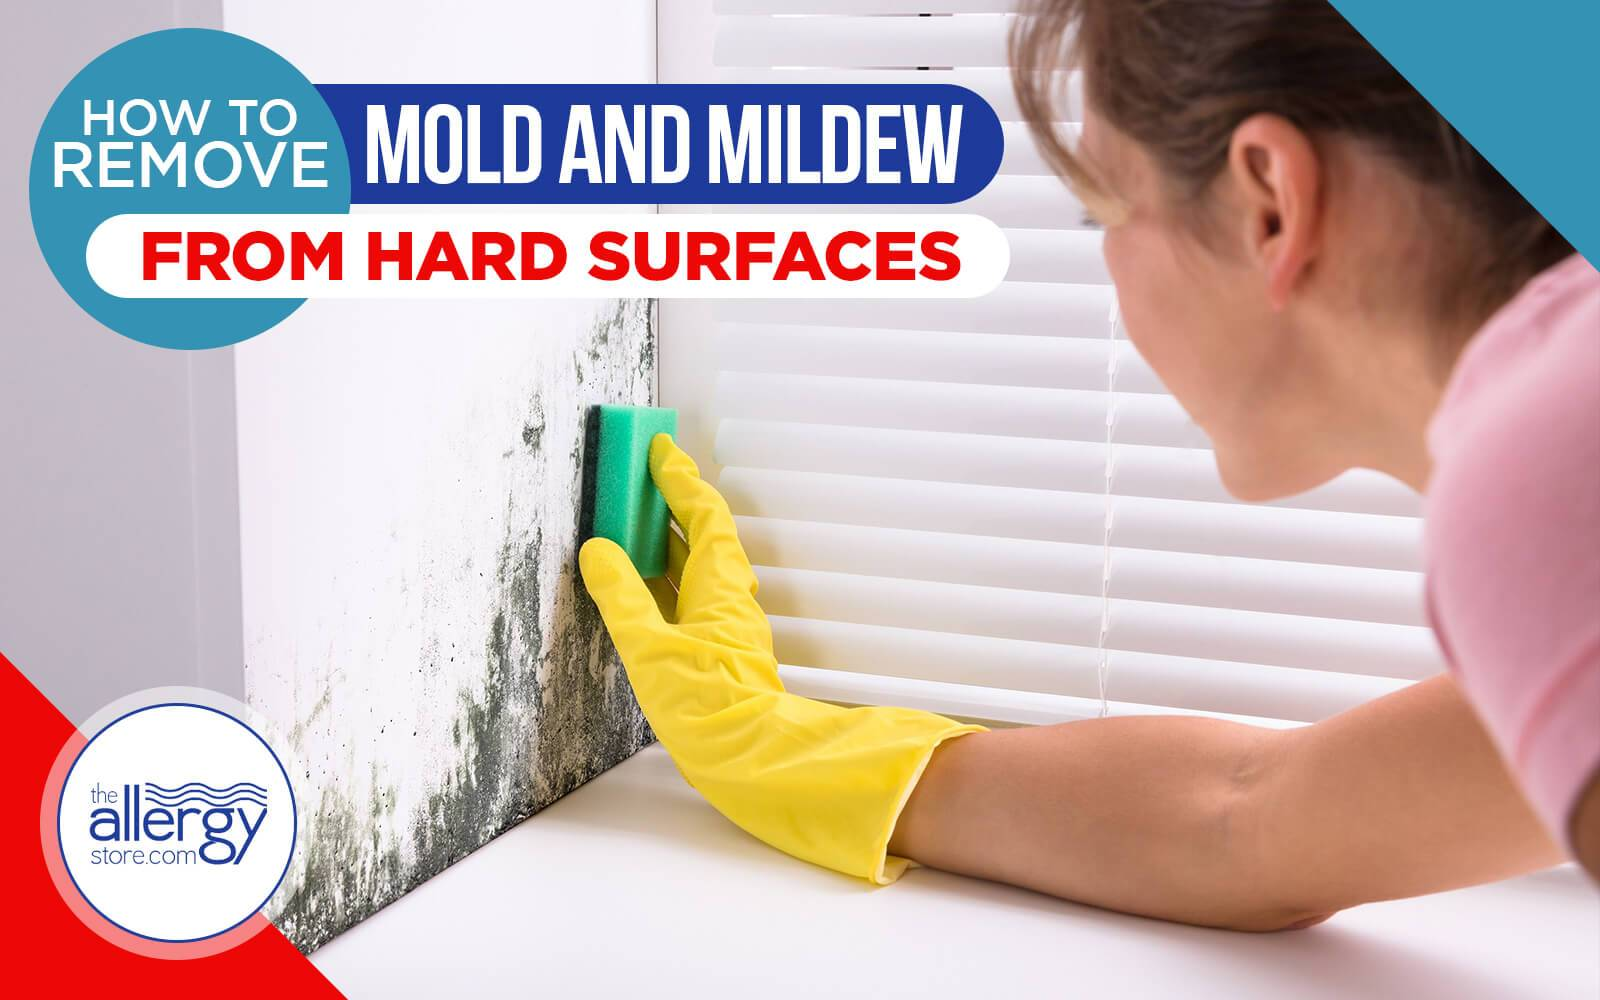 How to Remove Mold and Mildew from Hard Surfaces